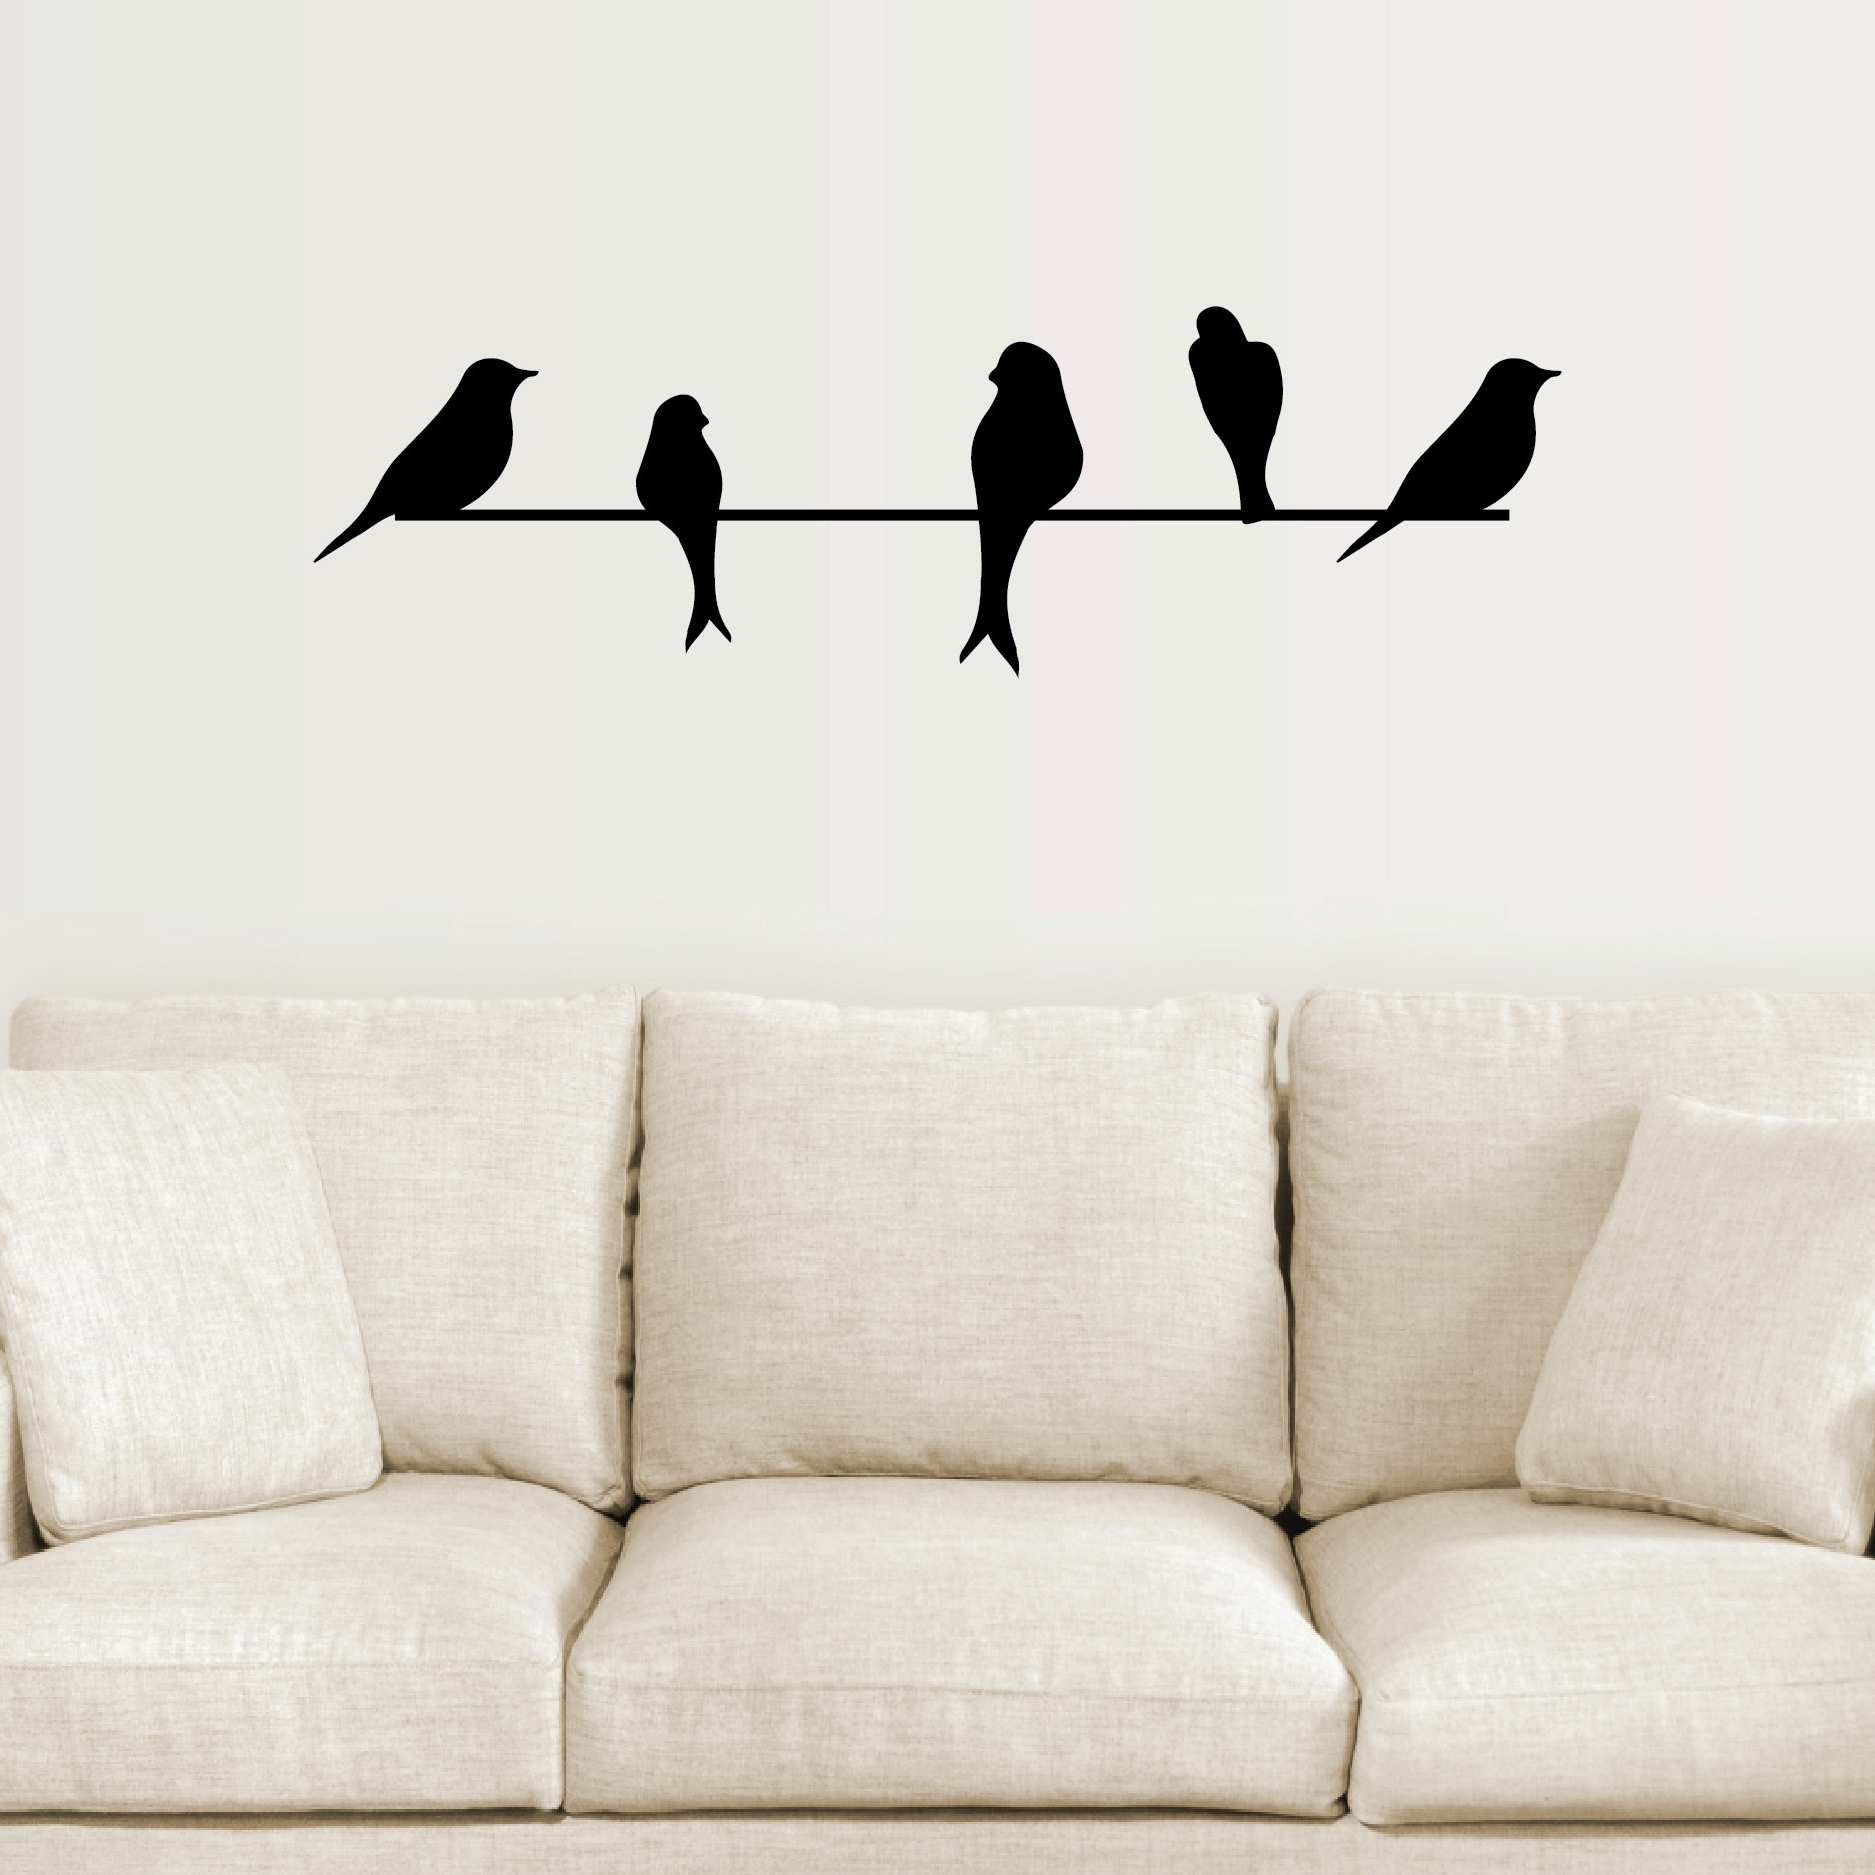 Most Popular Birds On A Wire Wall Art with regard to Birds On A Wire Wall Decor - Bsparker